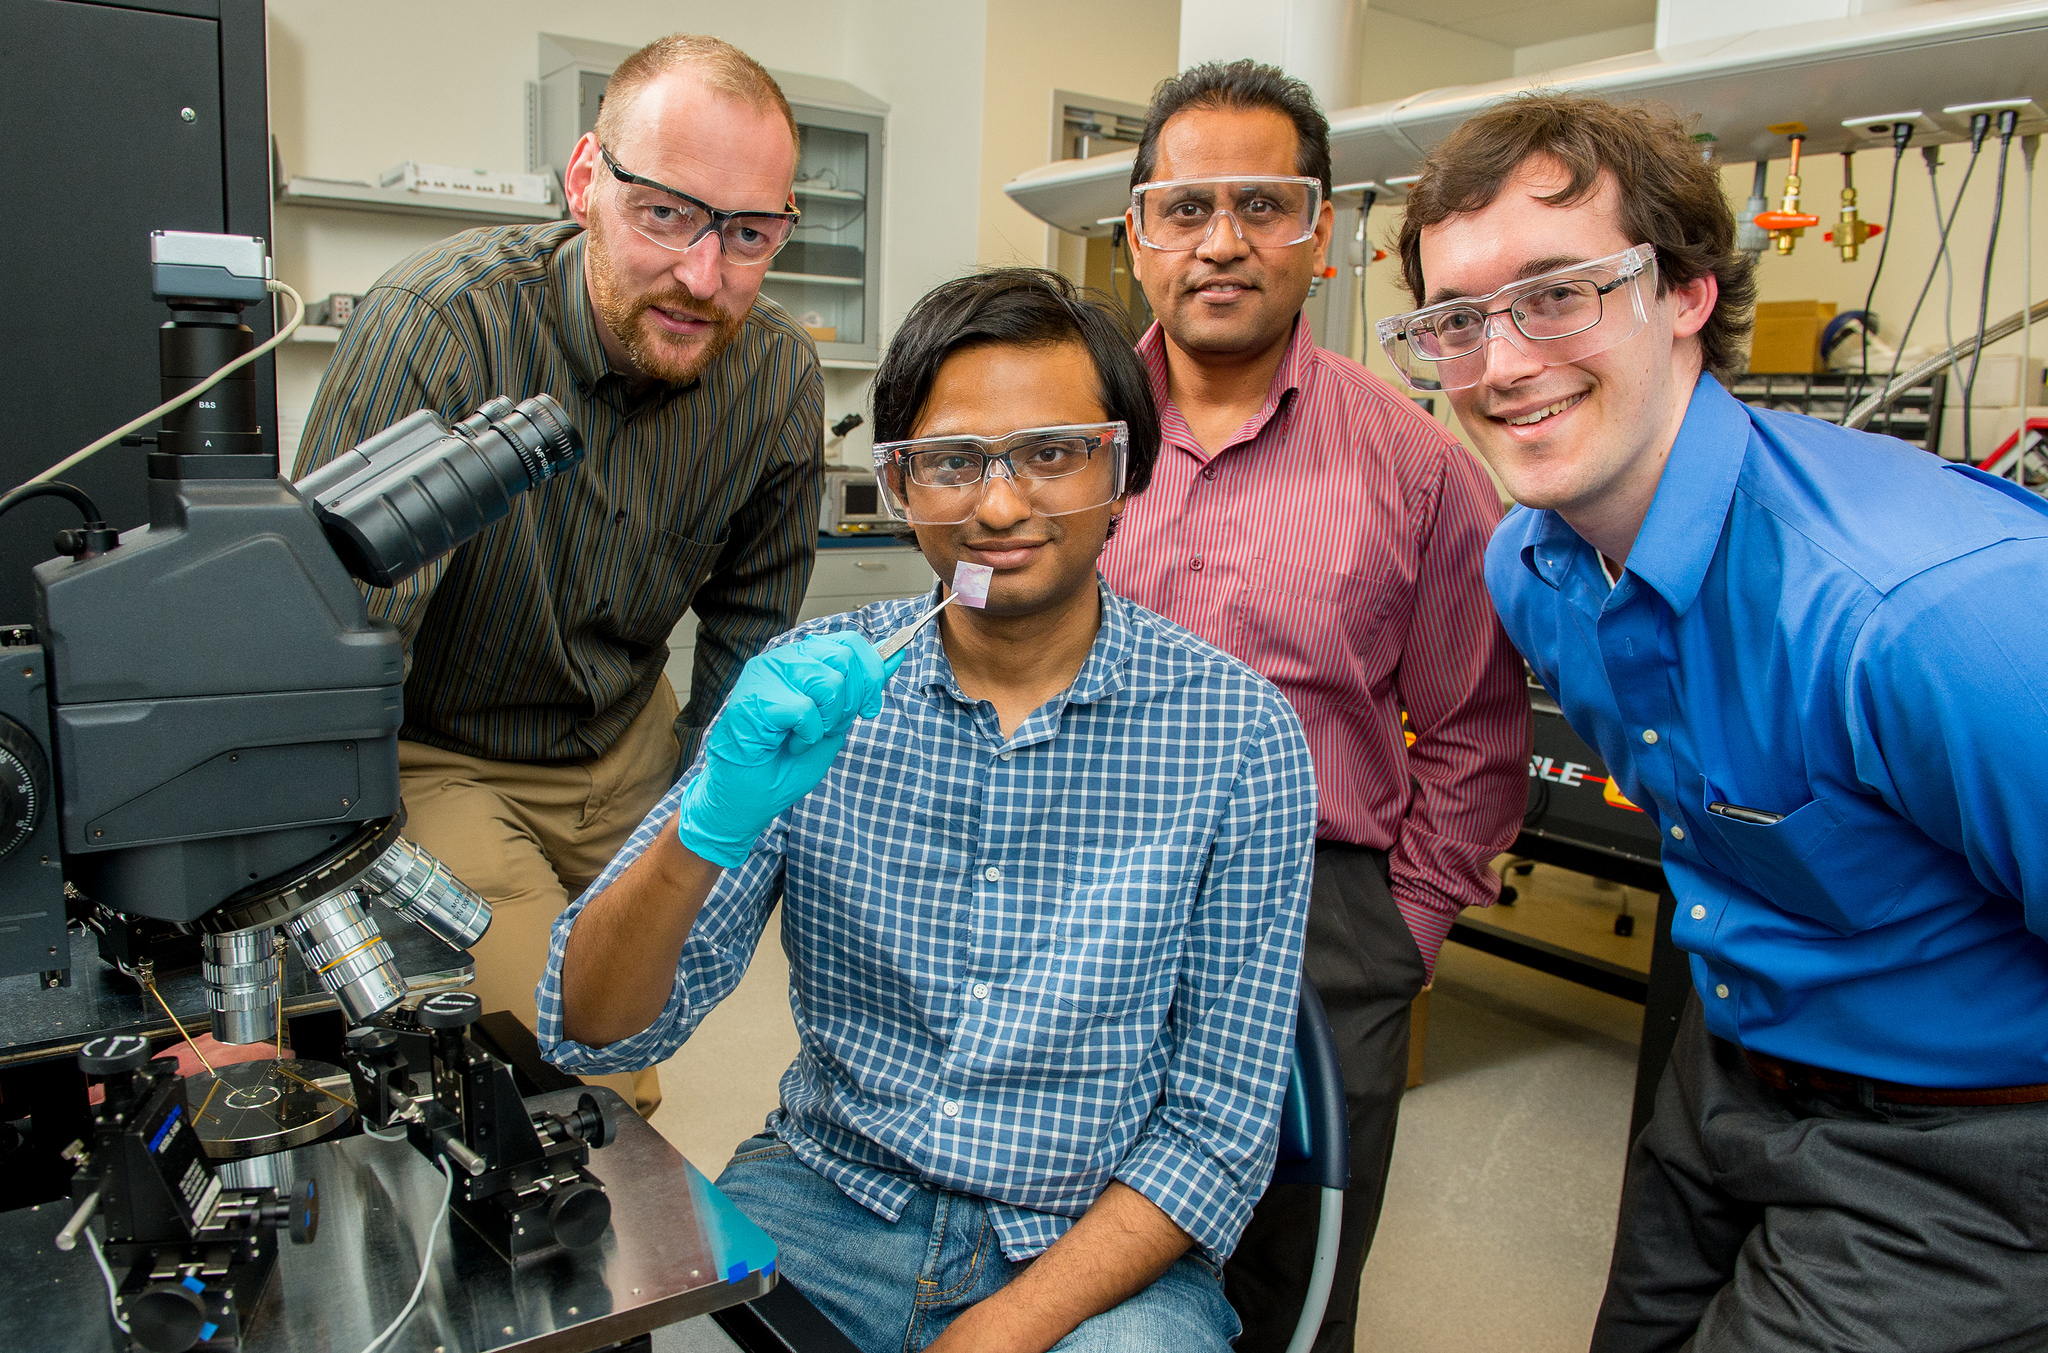 Andreas Roelofs, Anirudha Sumant, and Richard Gulotty; in foreground, Saptarshi Das, scientists from Argonne who created the world's thinnest flexible, transparent thin-film transistor, which could one day be useful in making a truly flexible display screen for TVs or phones.